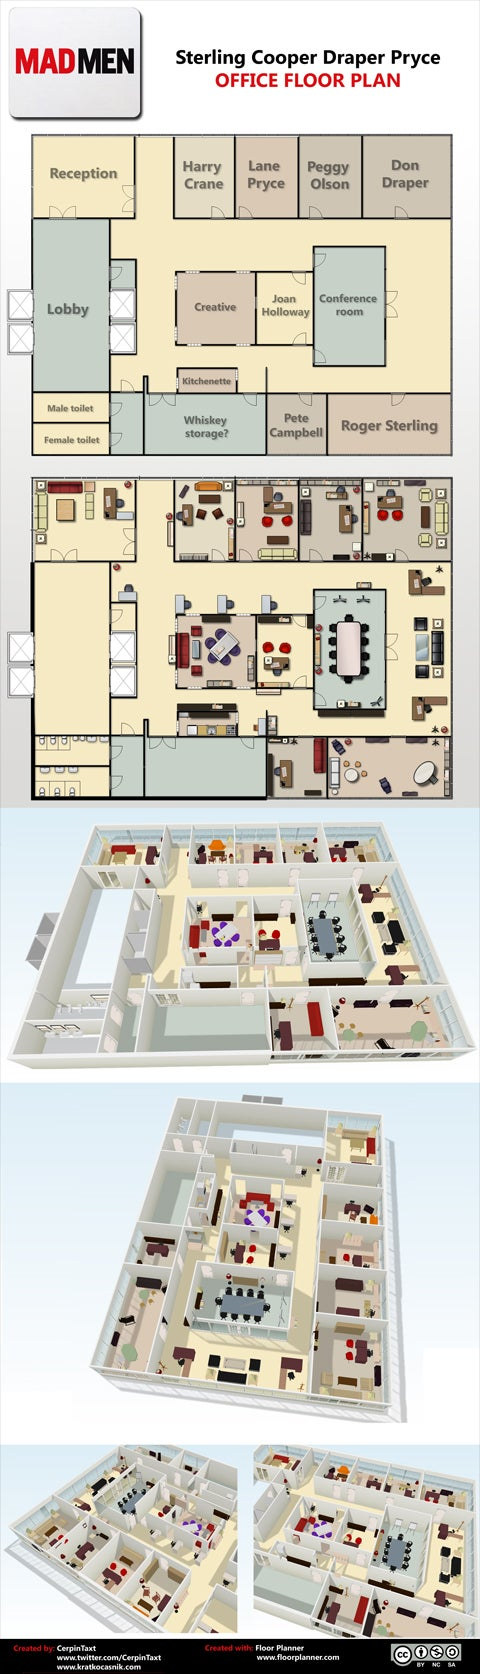 Hit the Whiskey Room on the Way to Joan's Office With This Mad Men Floorplan